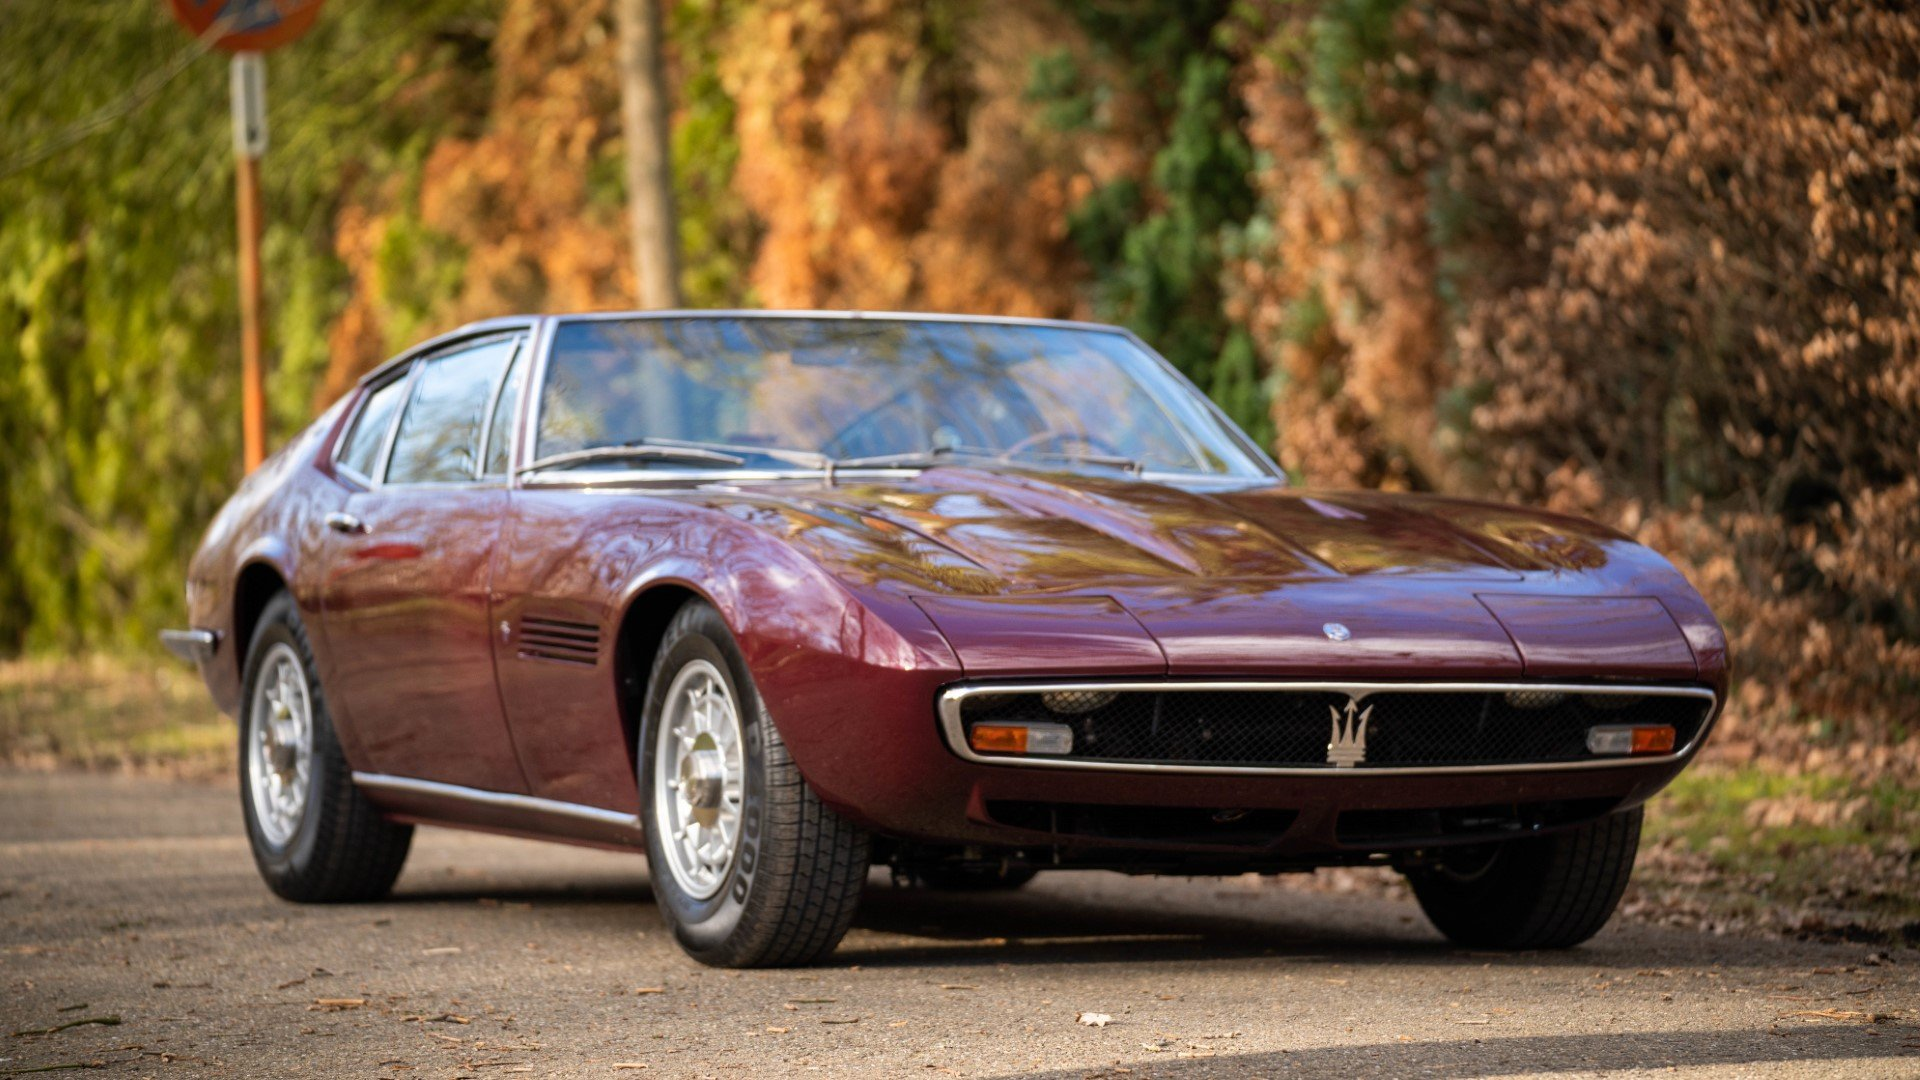 MASERATI GHIBLI Coupe superb restoration (1968) For Sale (picture 1 of 6)